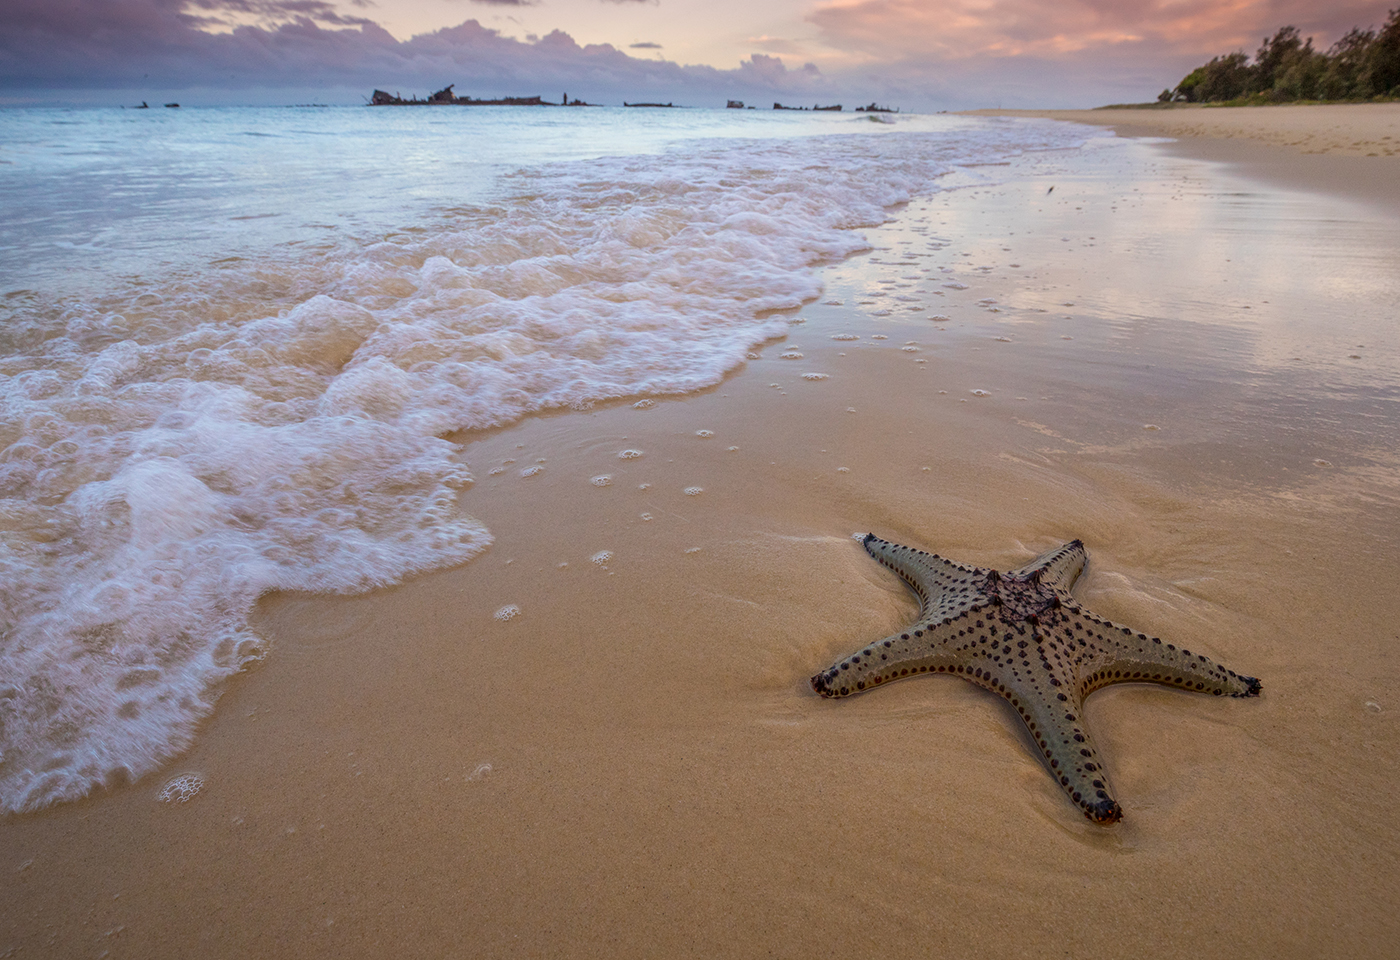 beach starfish shore image